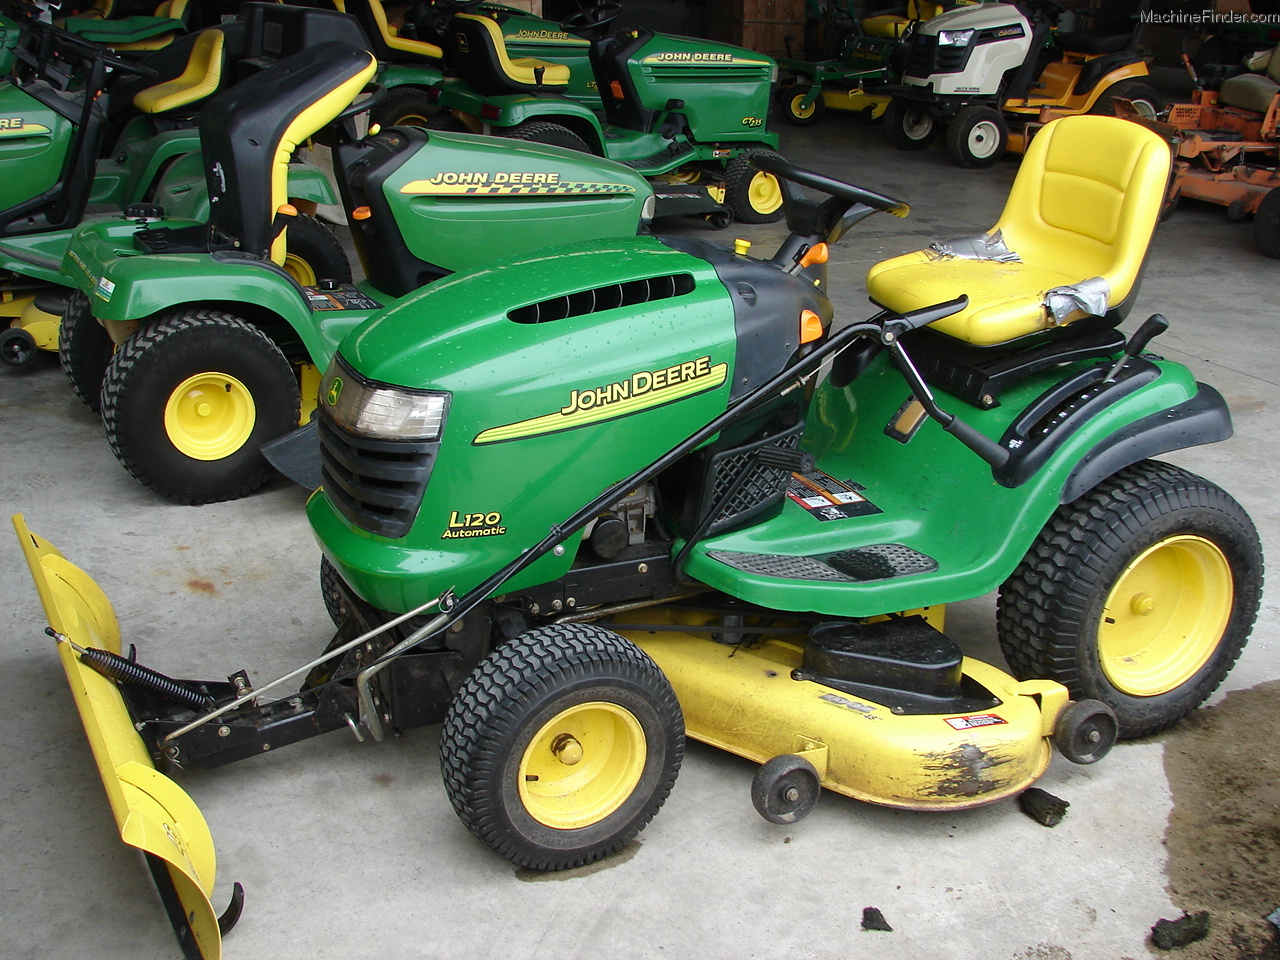 2003 John Deere L120 Lawn & Garden and Commercial Mowing ...